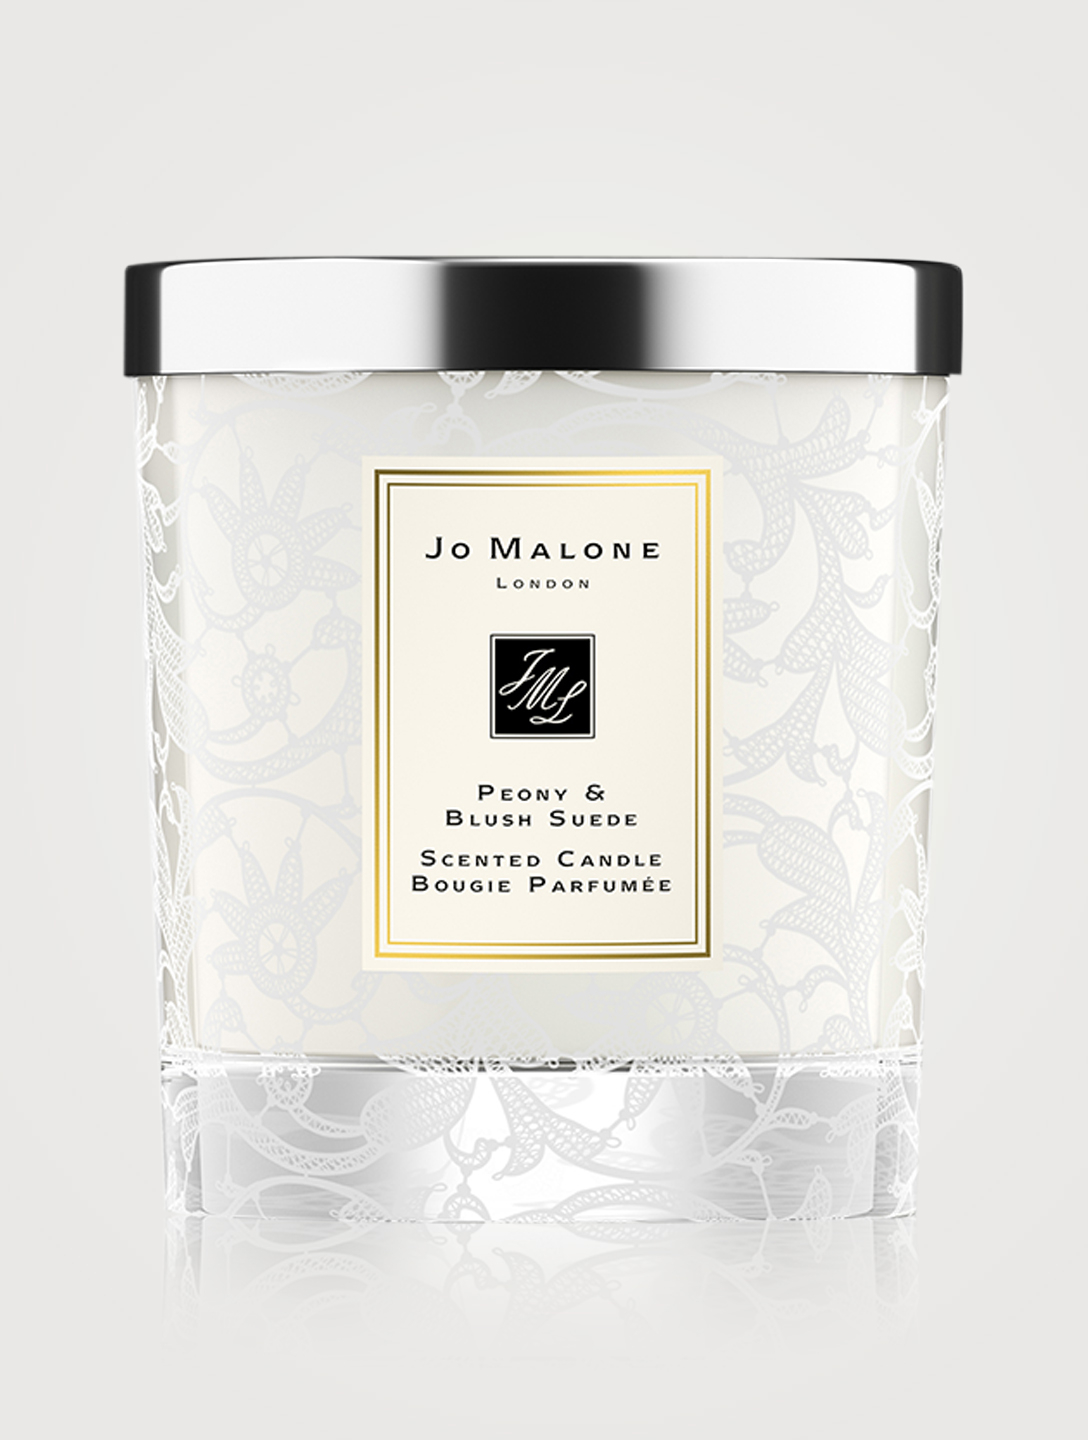 JO MALONE LONDON Peony & Blush Suede Home Candle with Lace Design Beauty